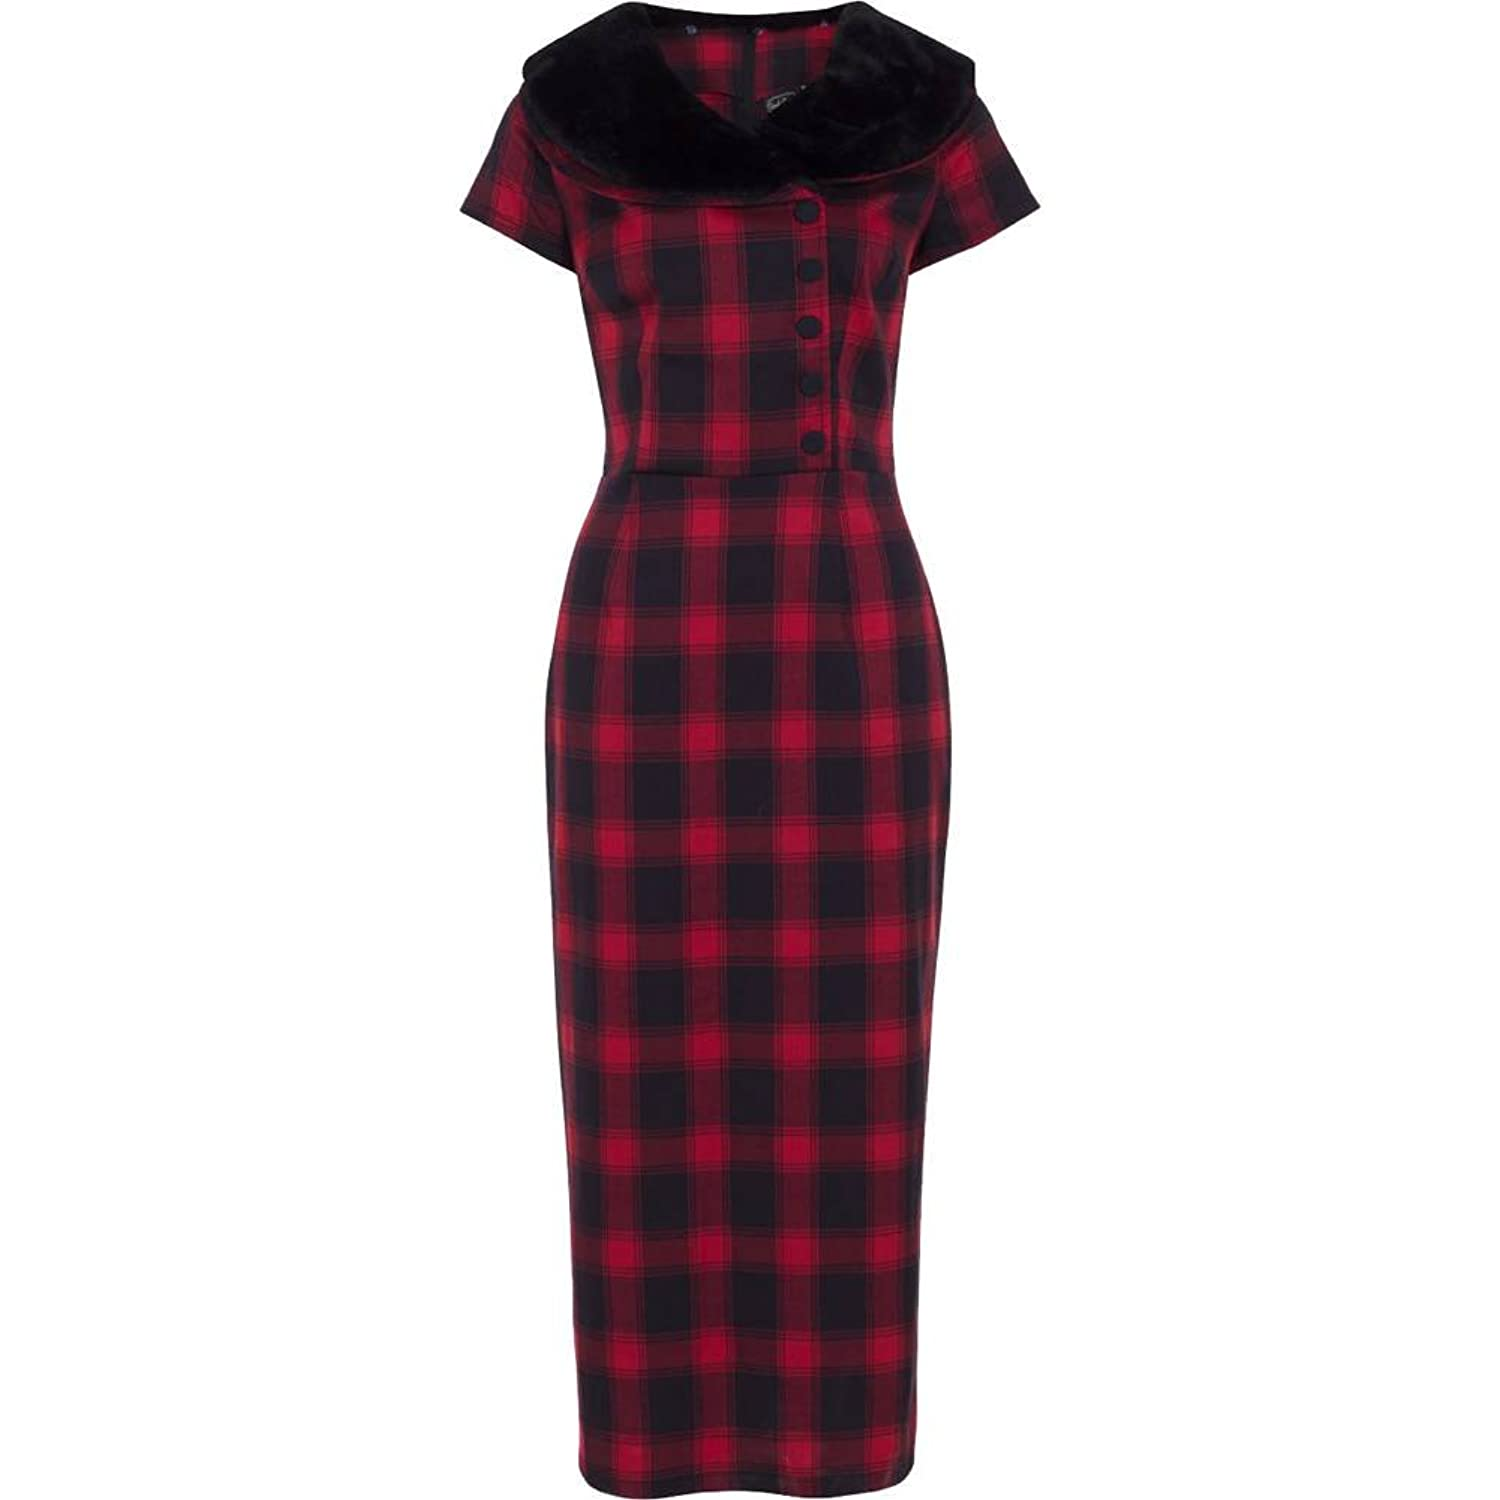 Pin Up Dresses | Pinup Clothing & Fashion Voodoo Vixen Joan Plaid Wiggle Dress Red $76.99 AT vintagedancer.com